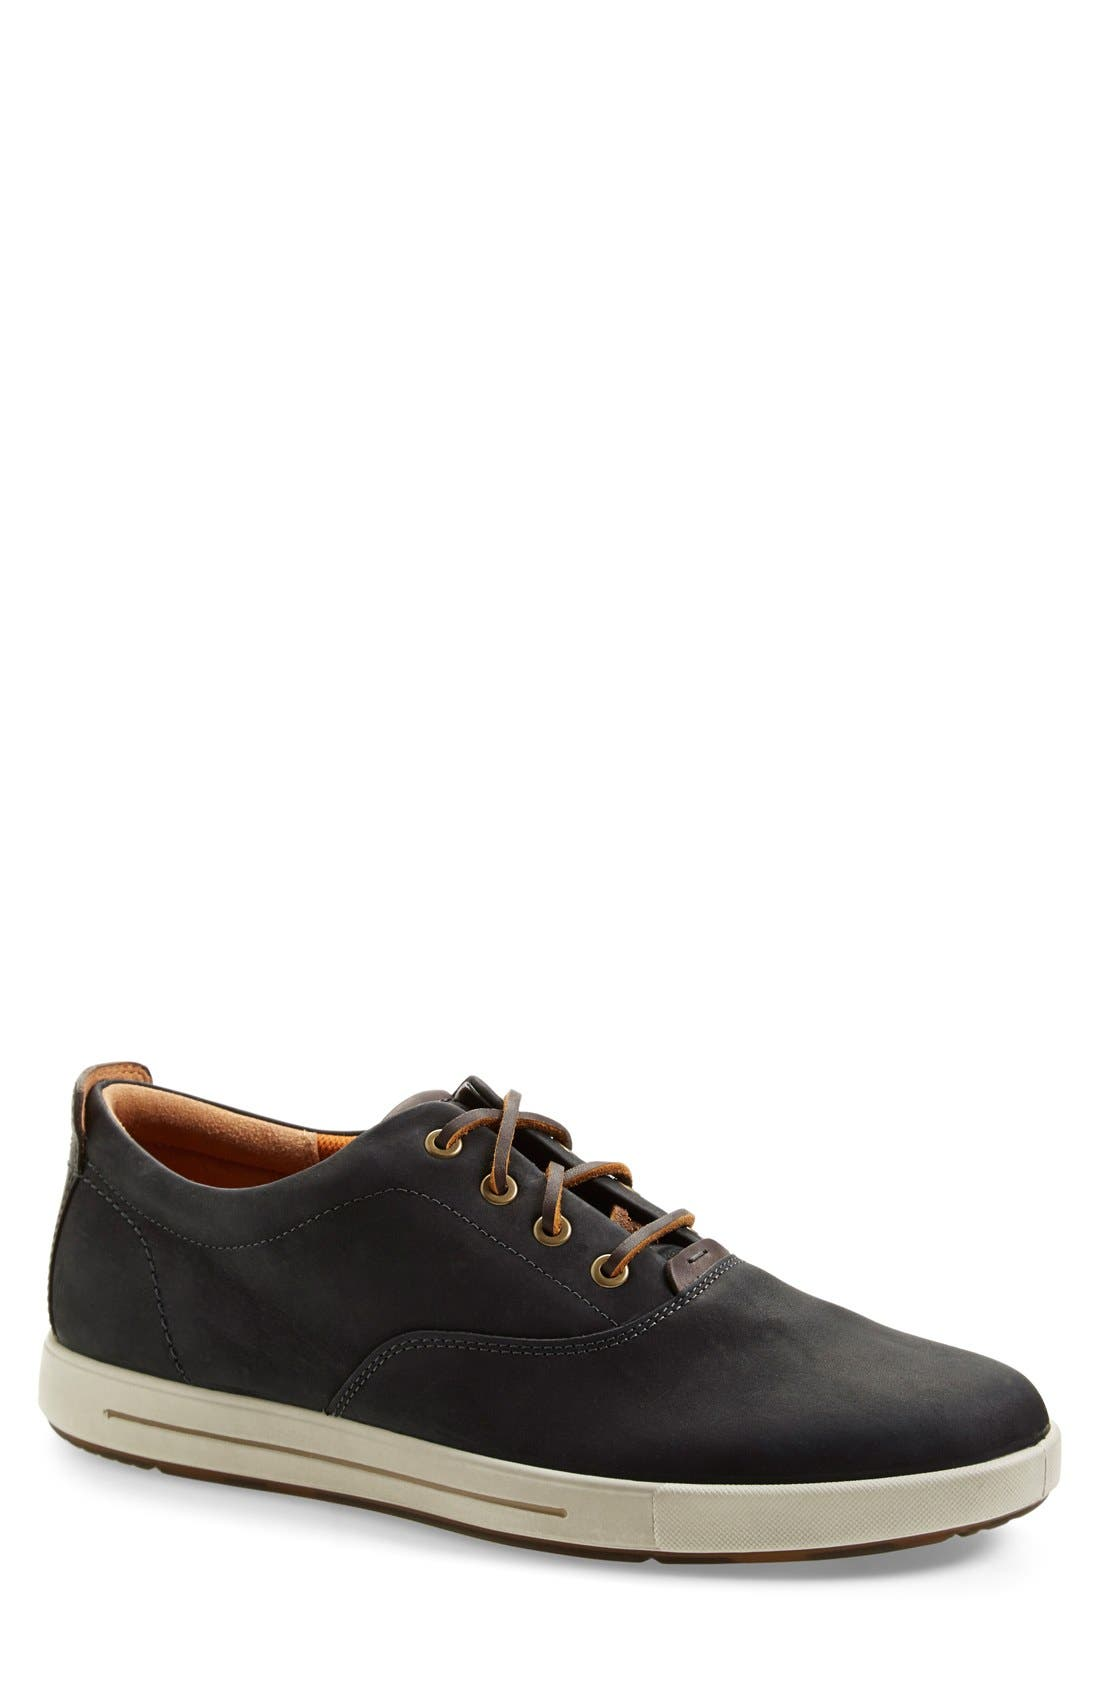 'Eisner' Sneaker,                         Main,                         color, 001